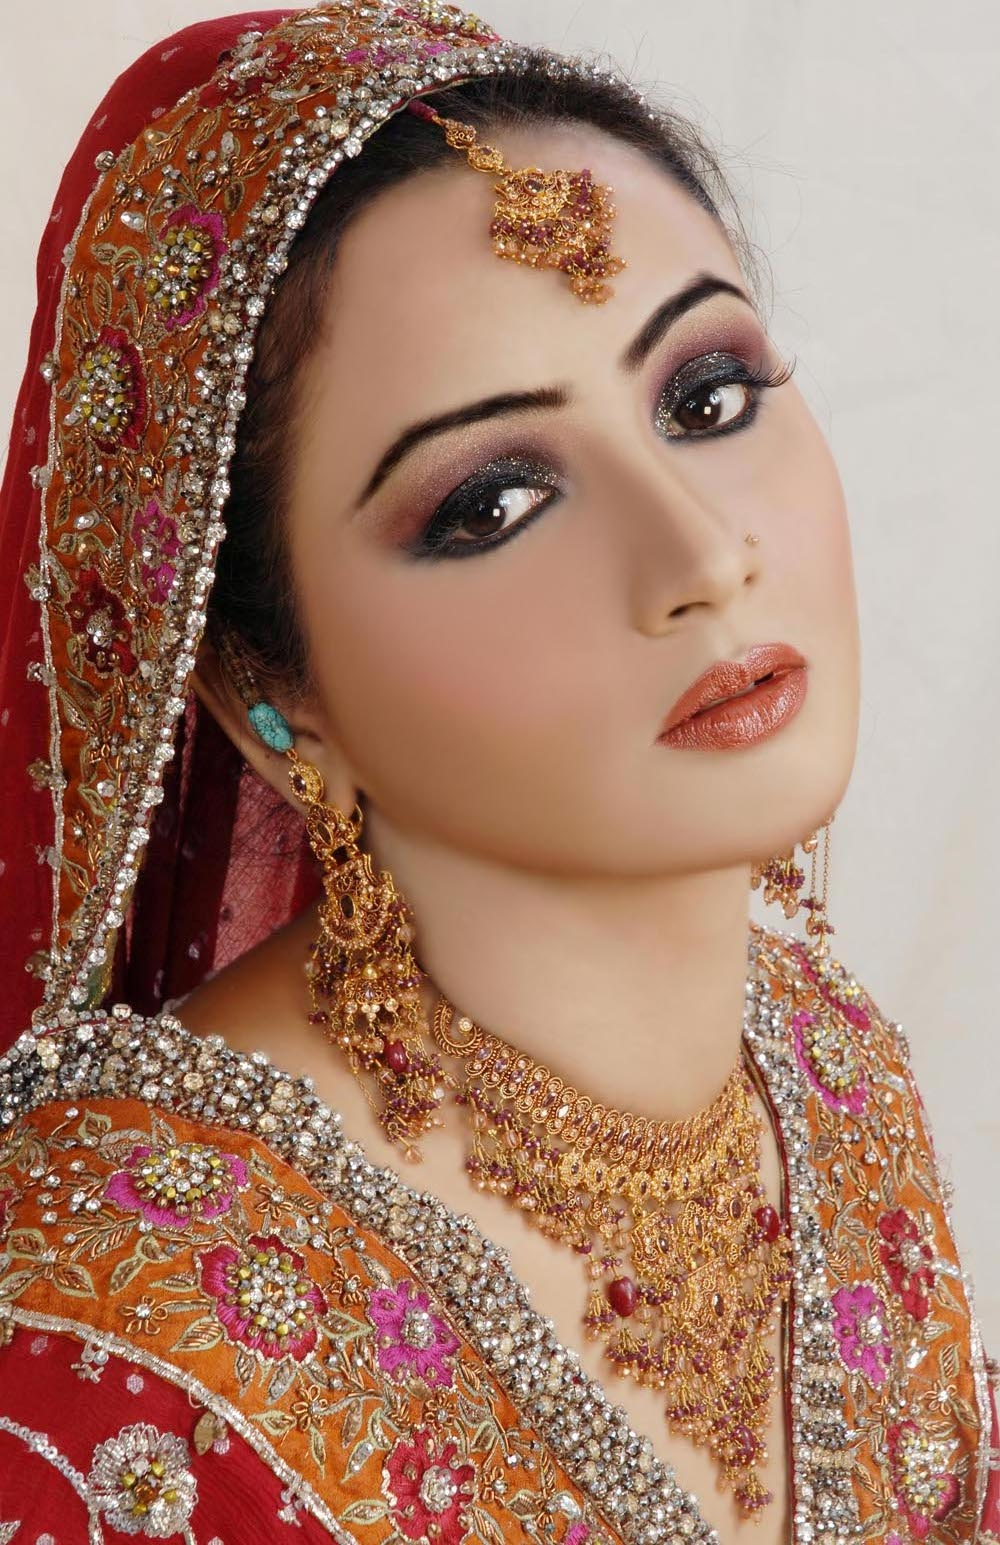 Fashion World Latest Fashion Bridal Make-up Fashion Pakistani Trends.